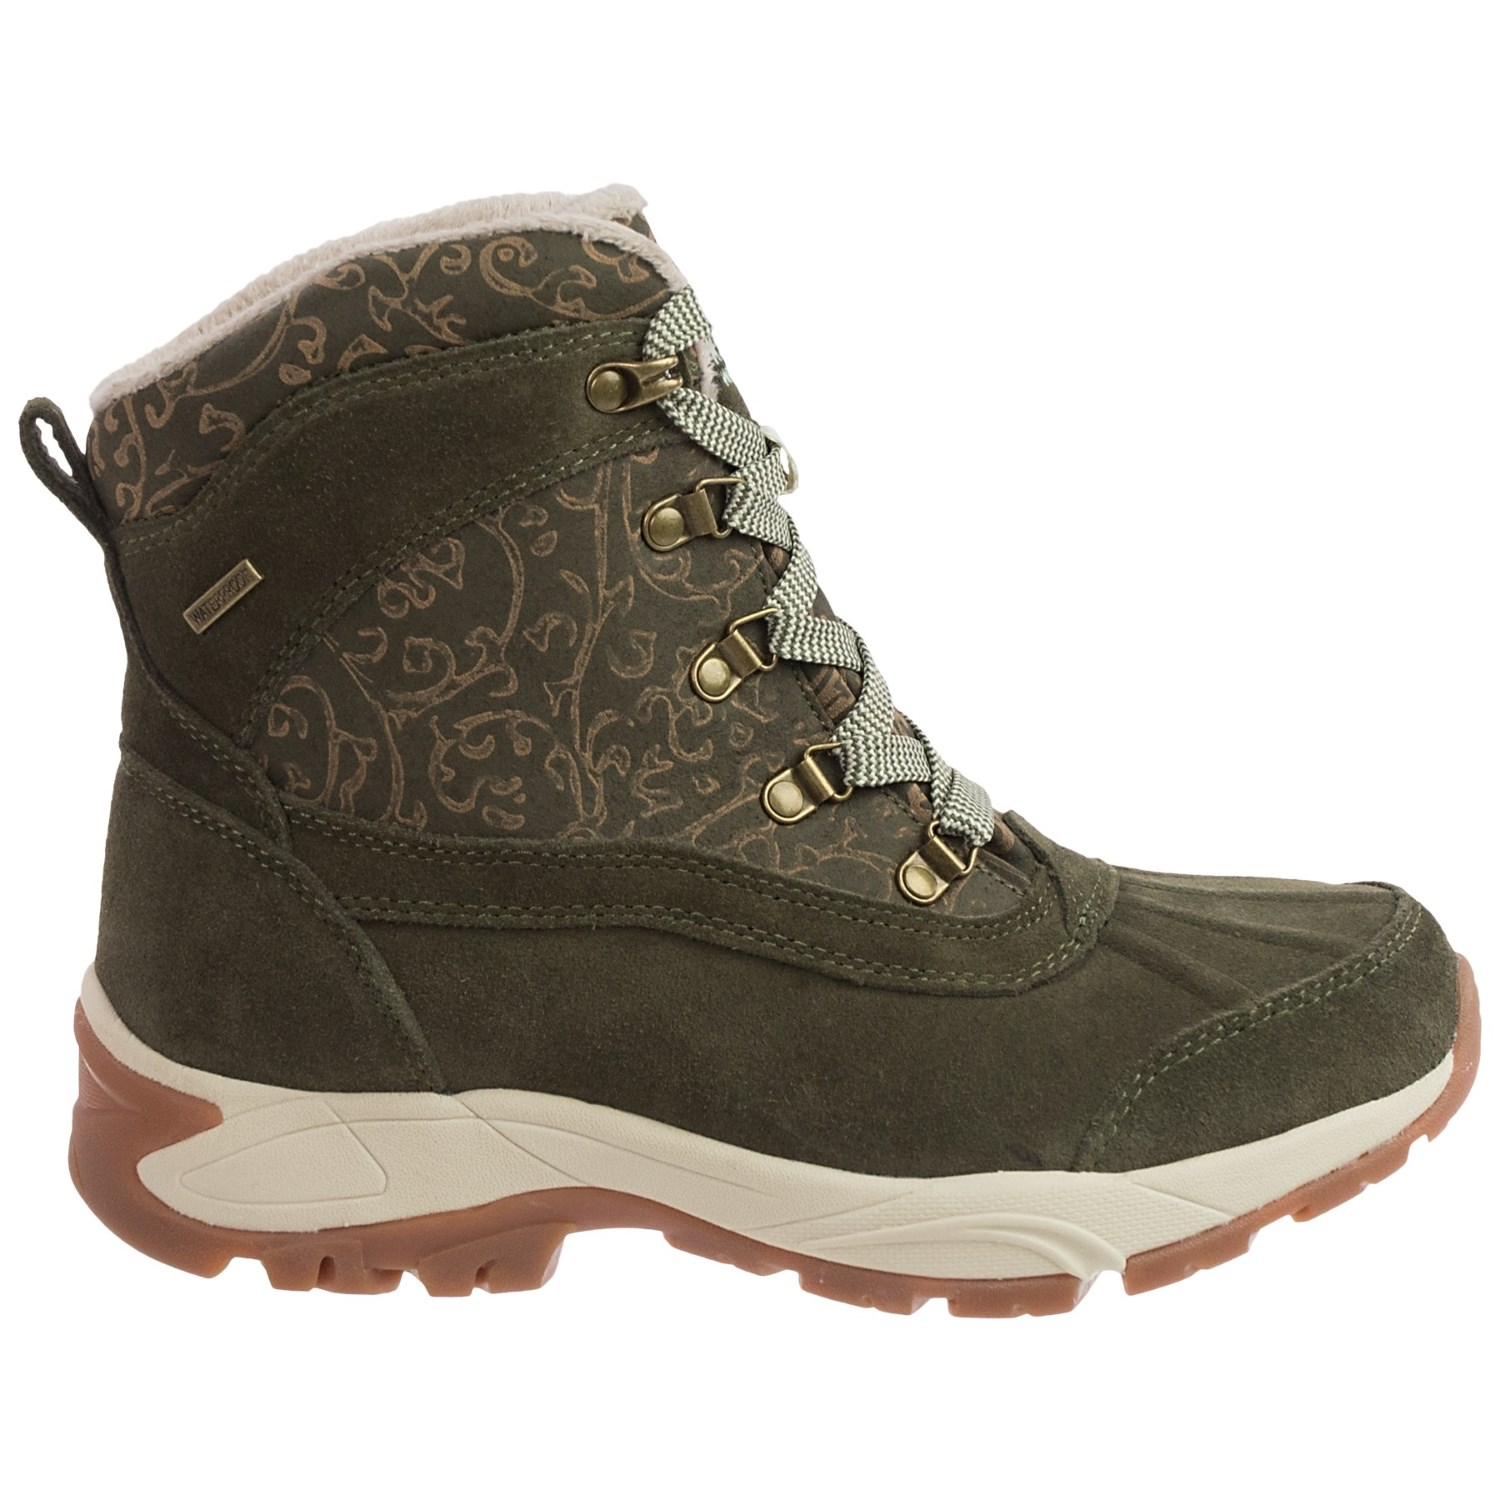 Kodiak Elie Leather Snow Boots (For Women) - Save 78%